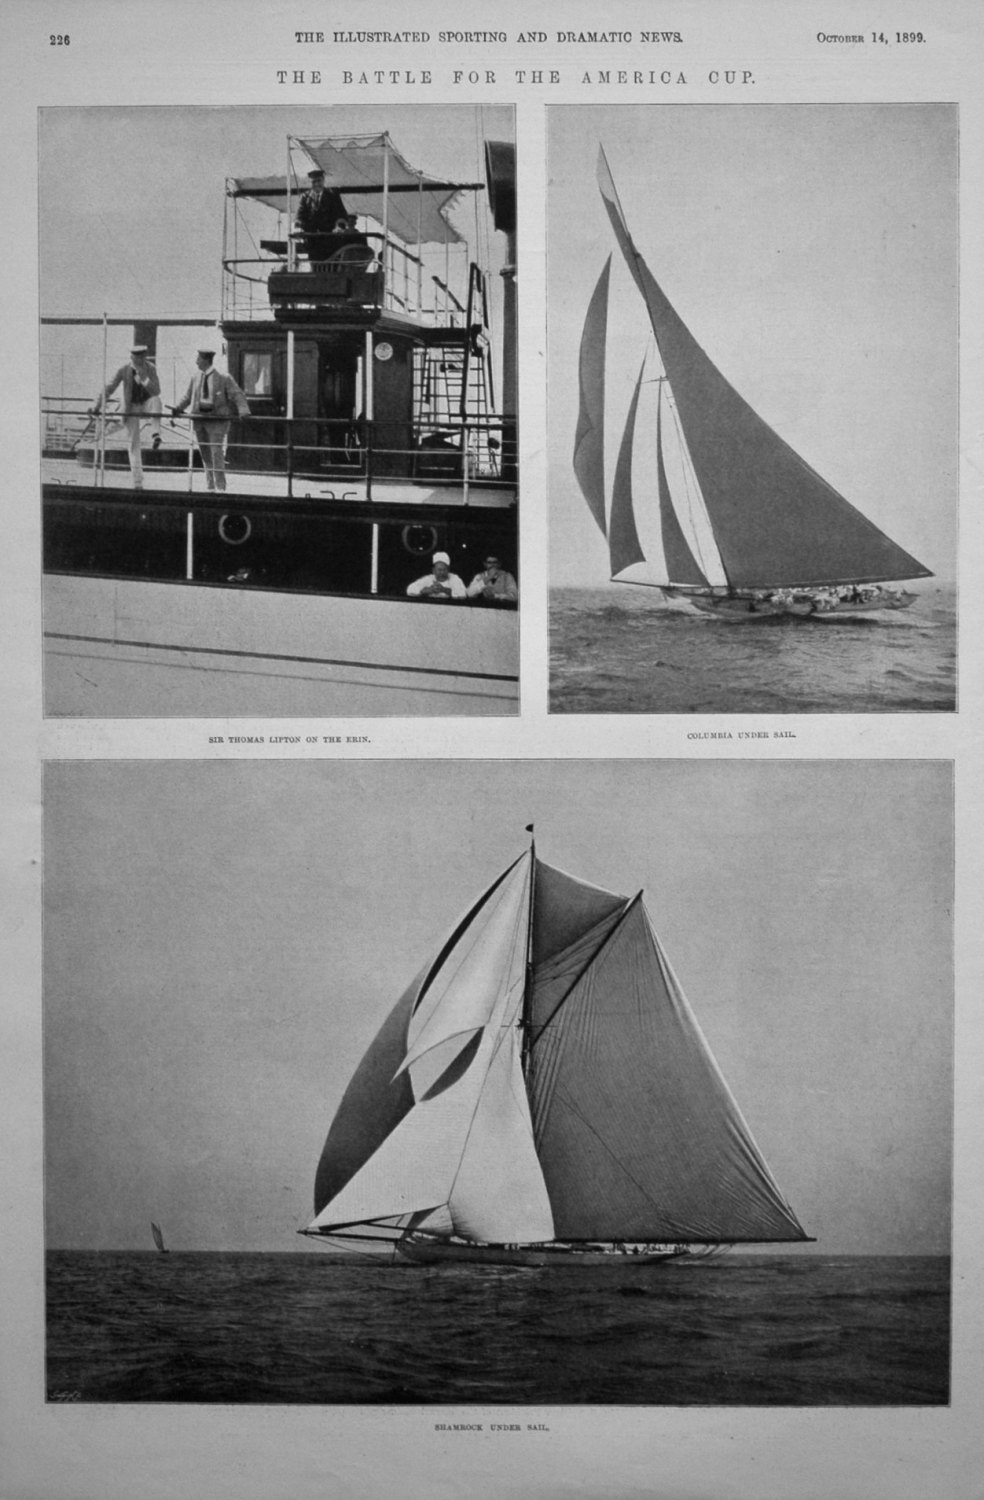 The Battle for the America Cup. 1899 (Sailing)